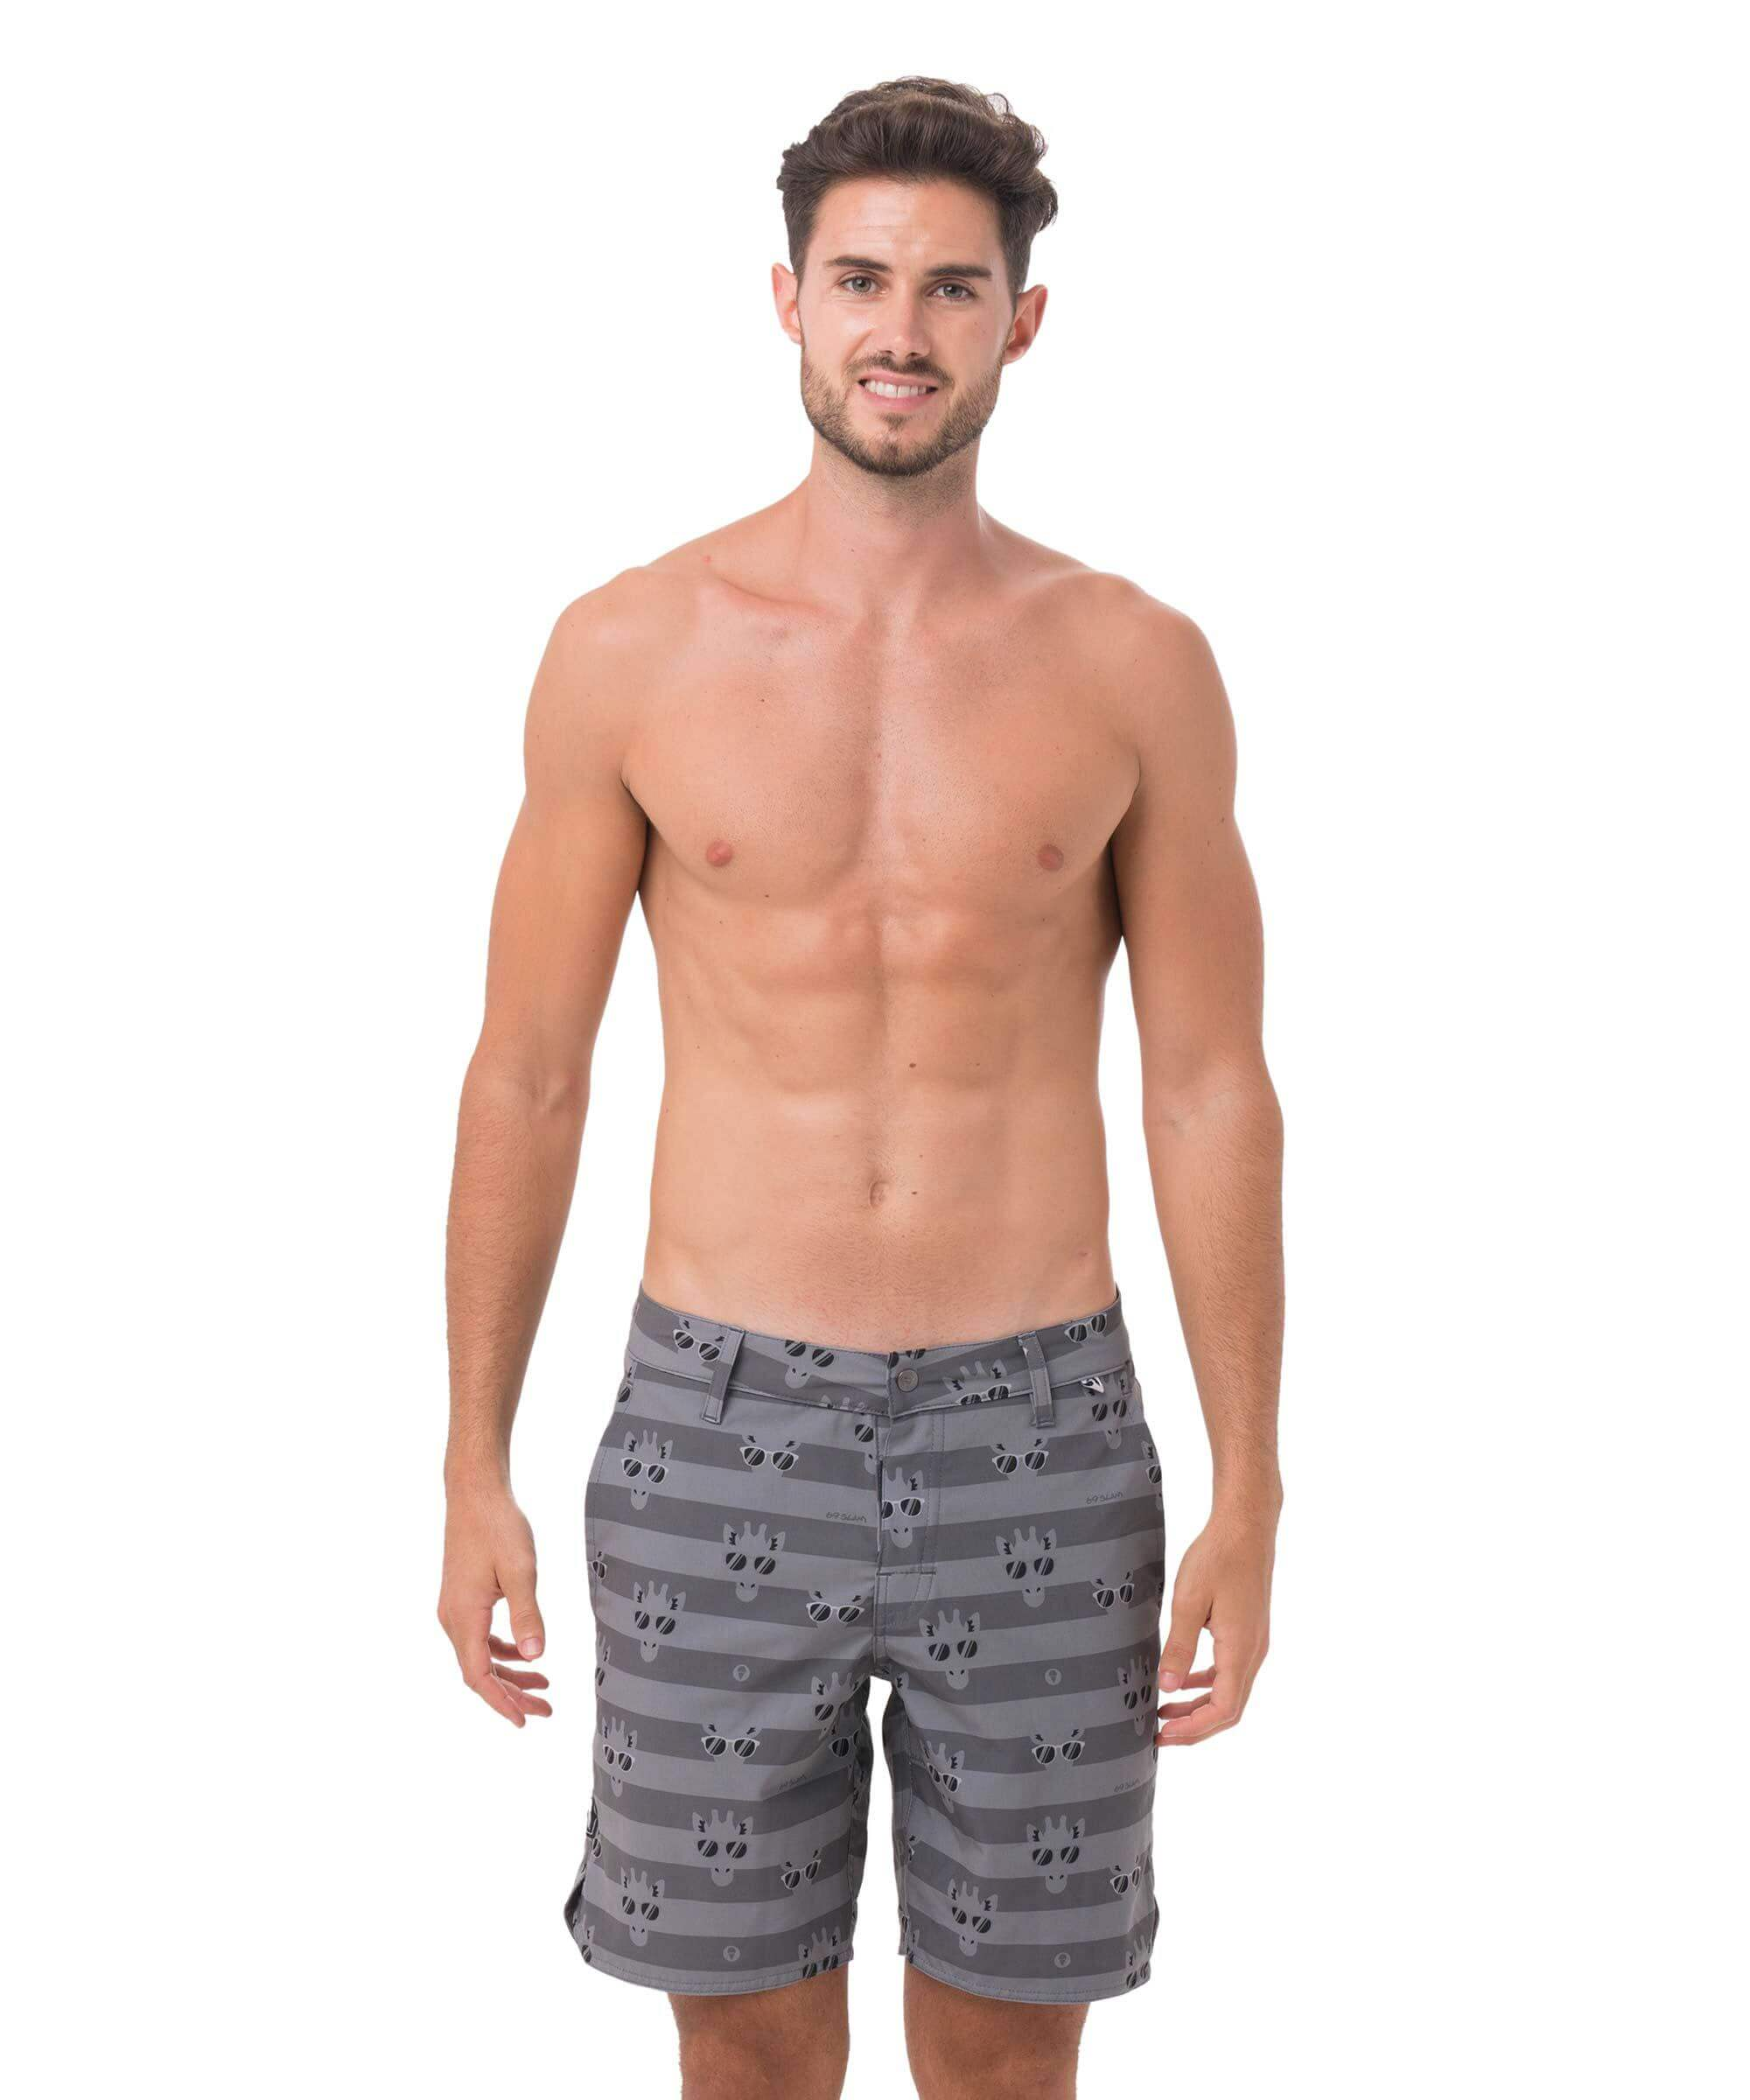 GIRAFFE STRIPES GREY DIMITRI WALKSHORTS